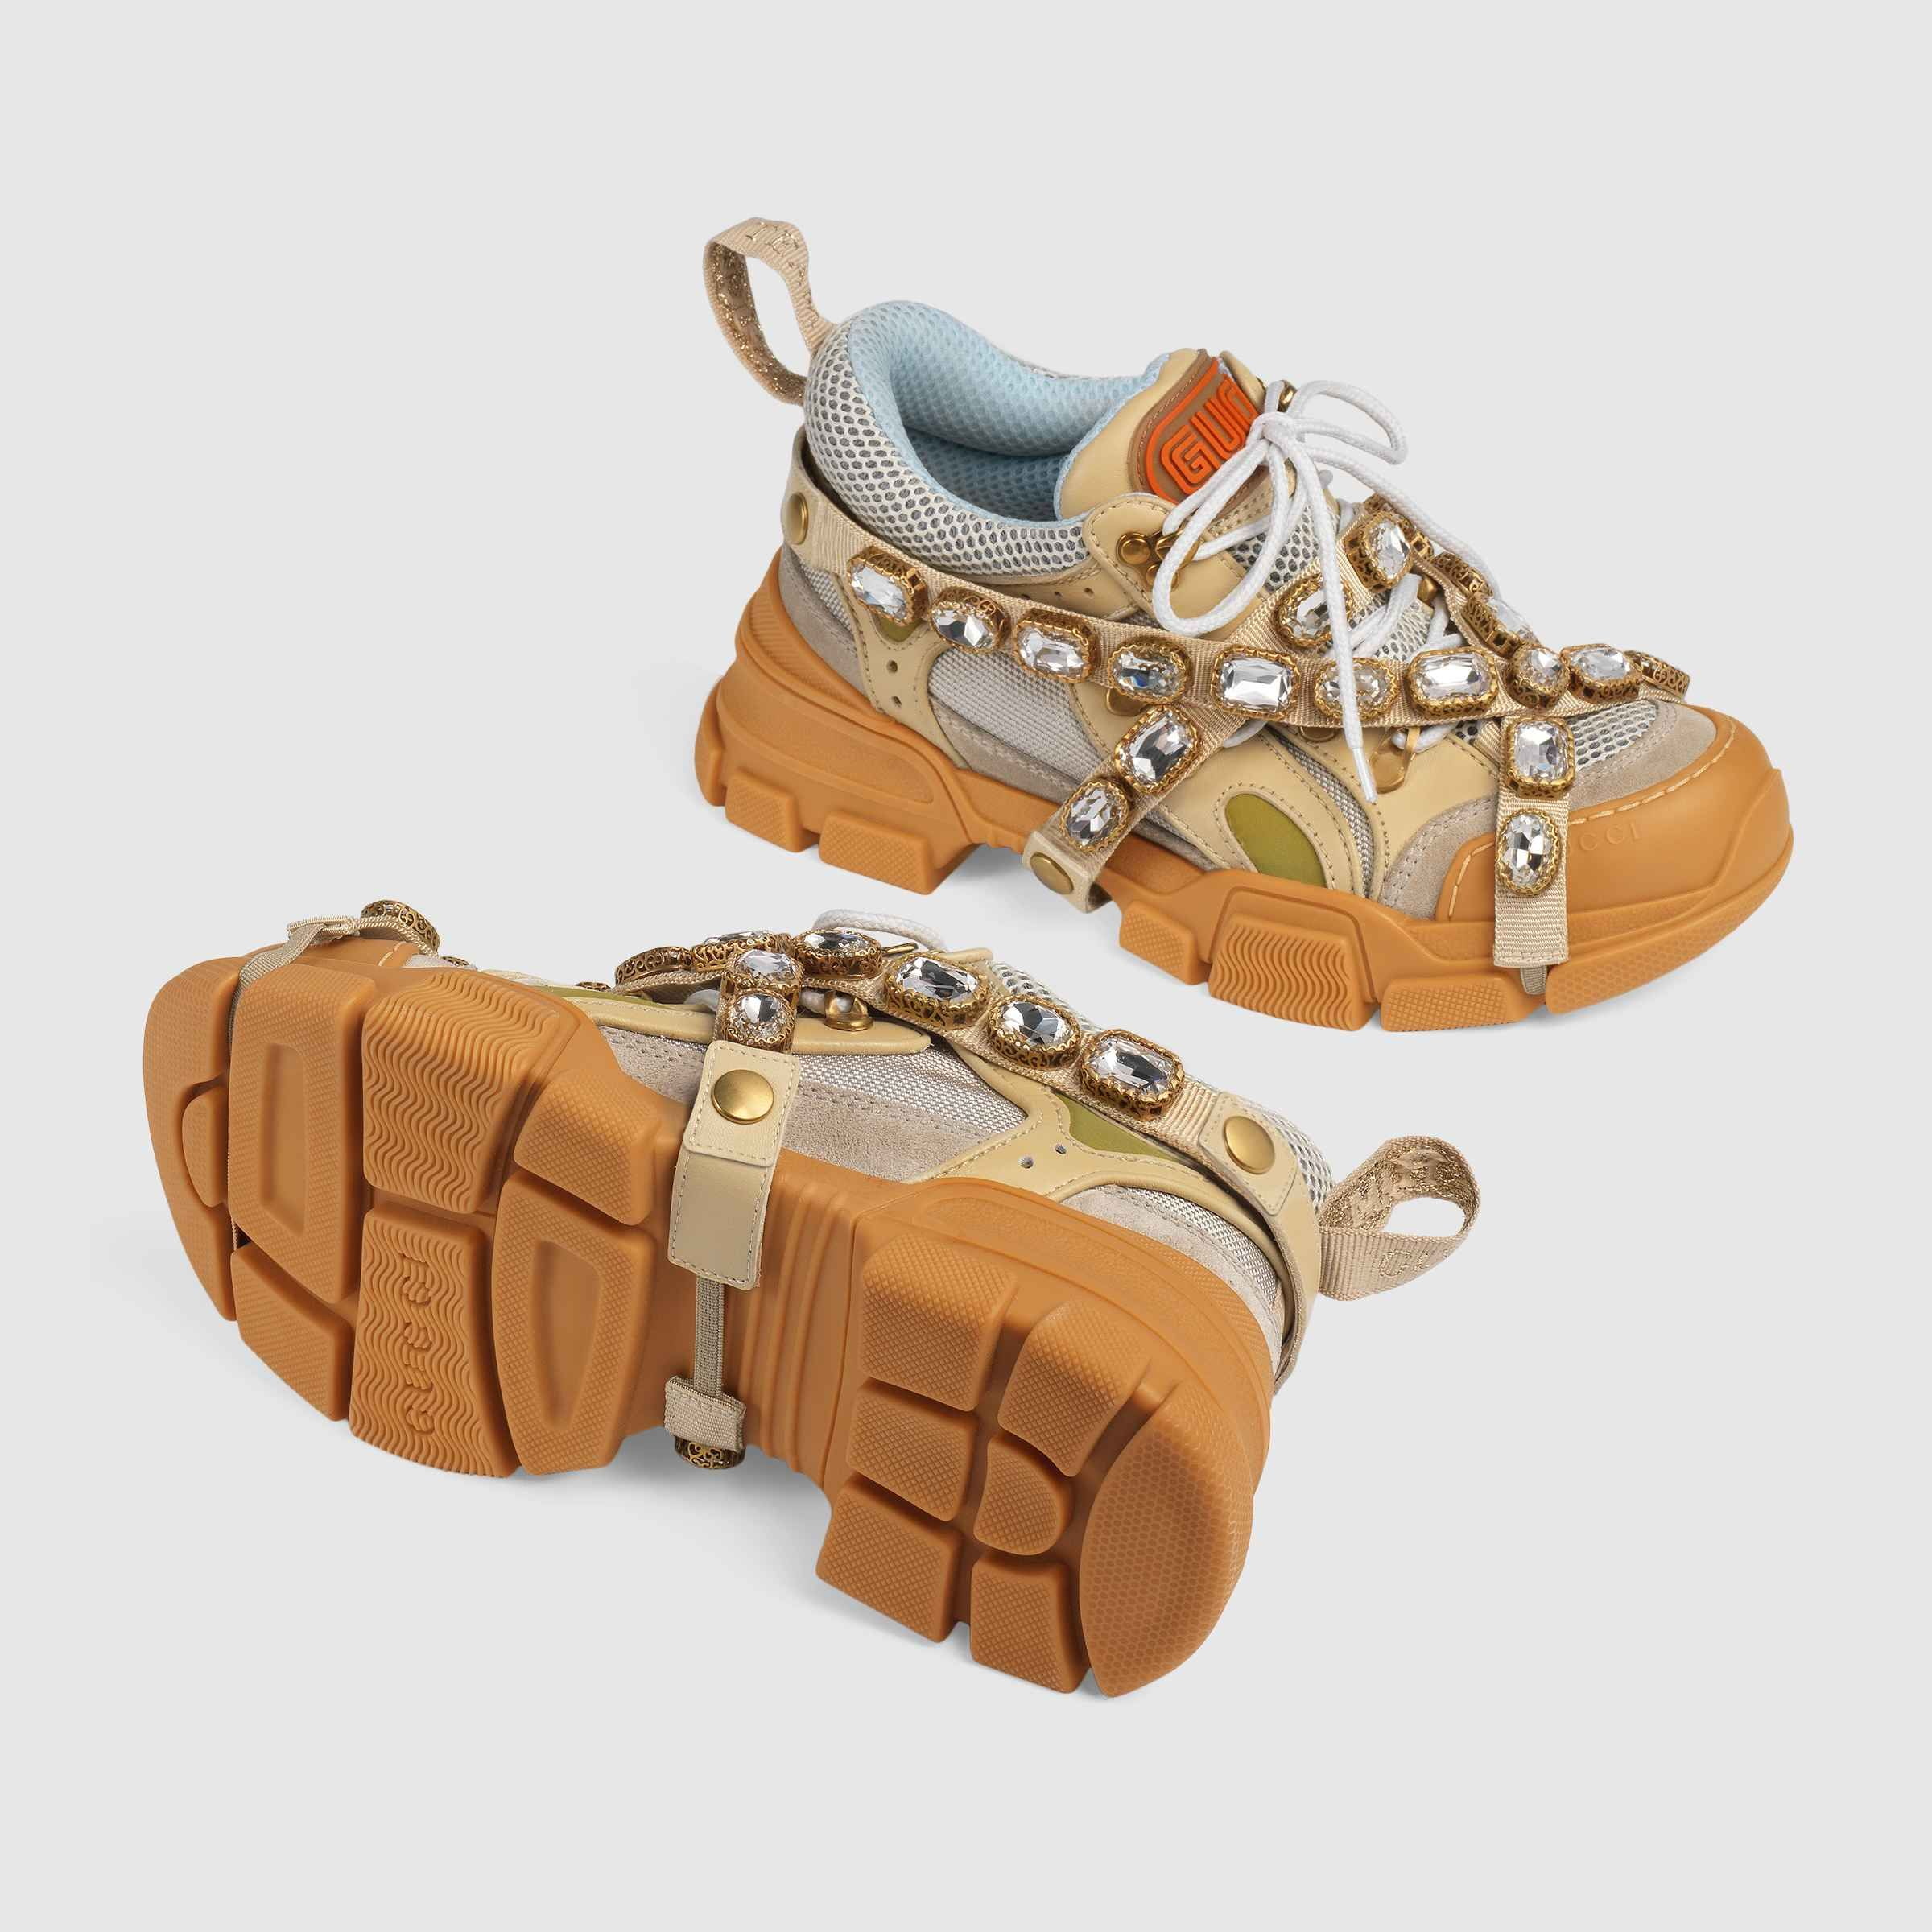 7cc2d2590db74 Shop the Flashtrek sneaker with removable crystals by Gucci. Sparkling  crystals are embroidered onto a removable elastic strap, wrapping around  these ...